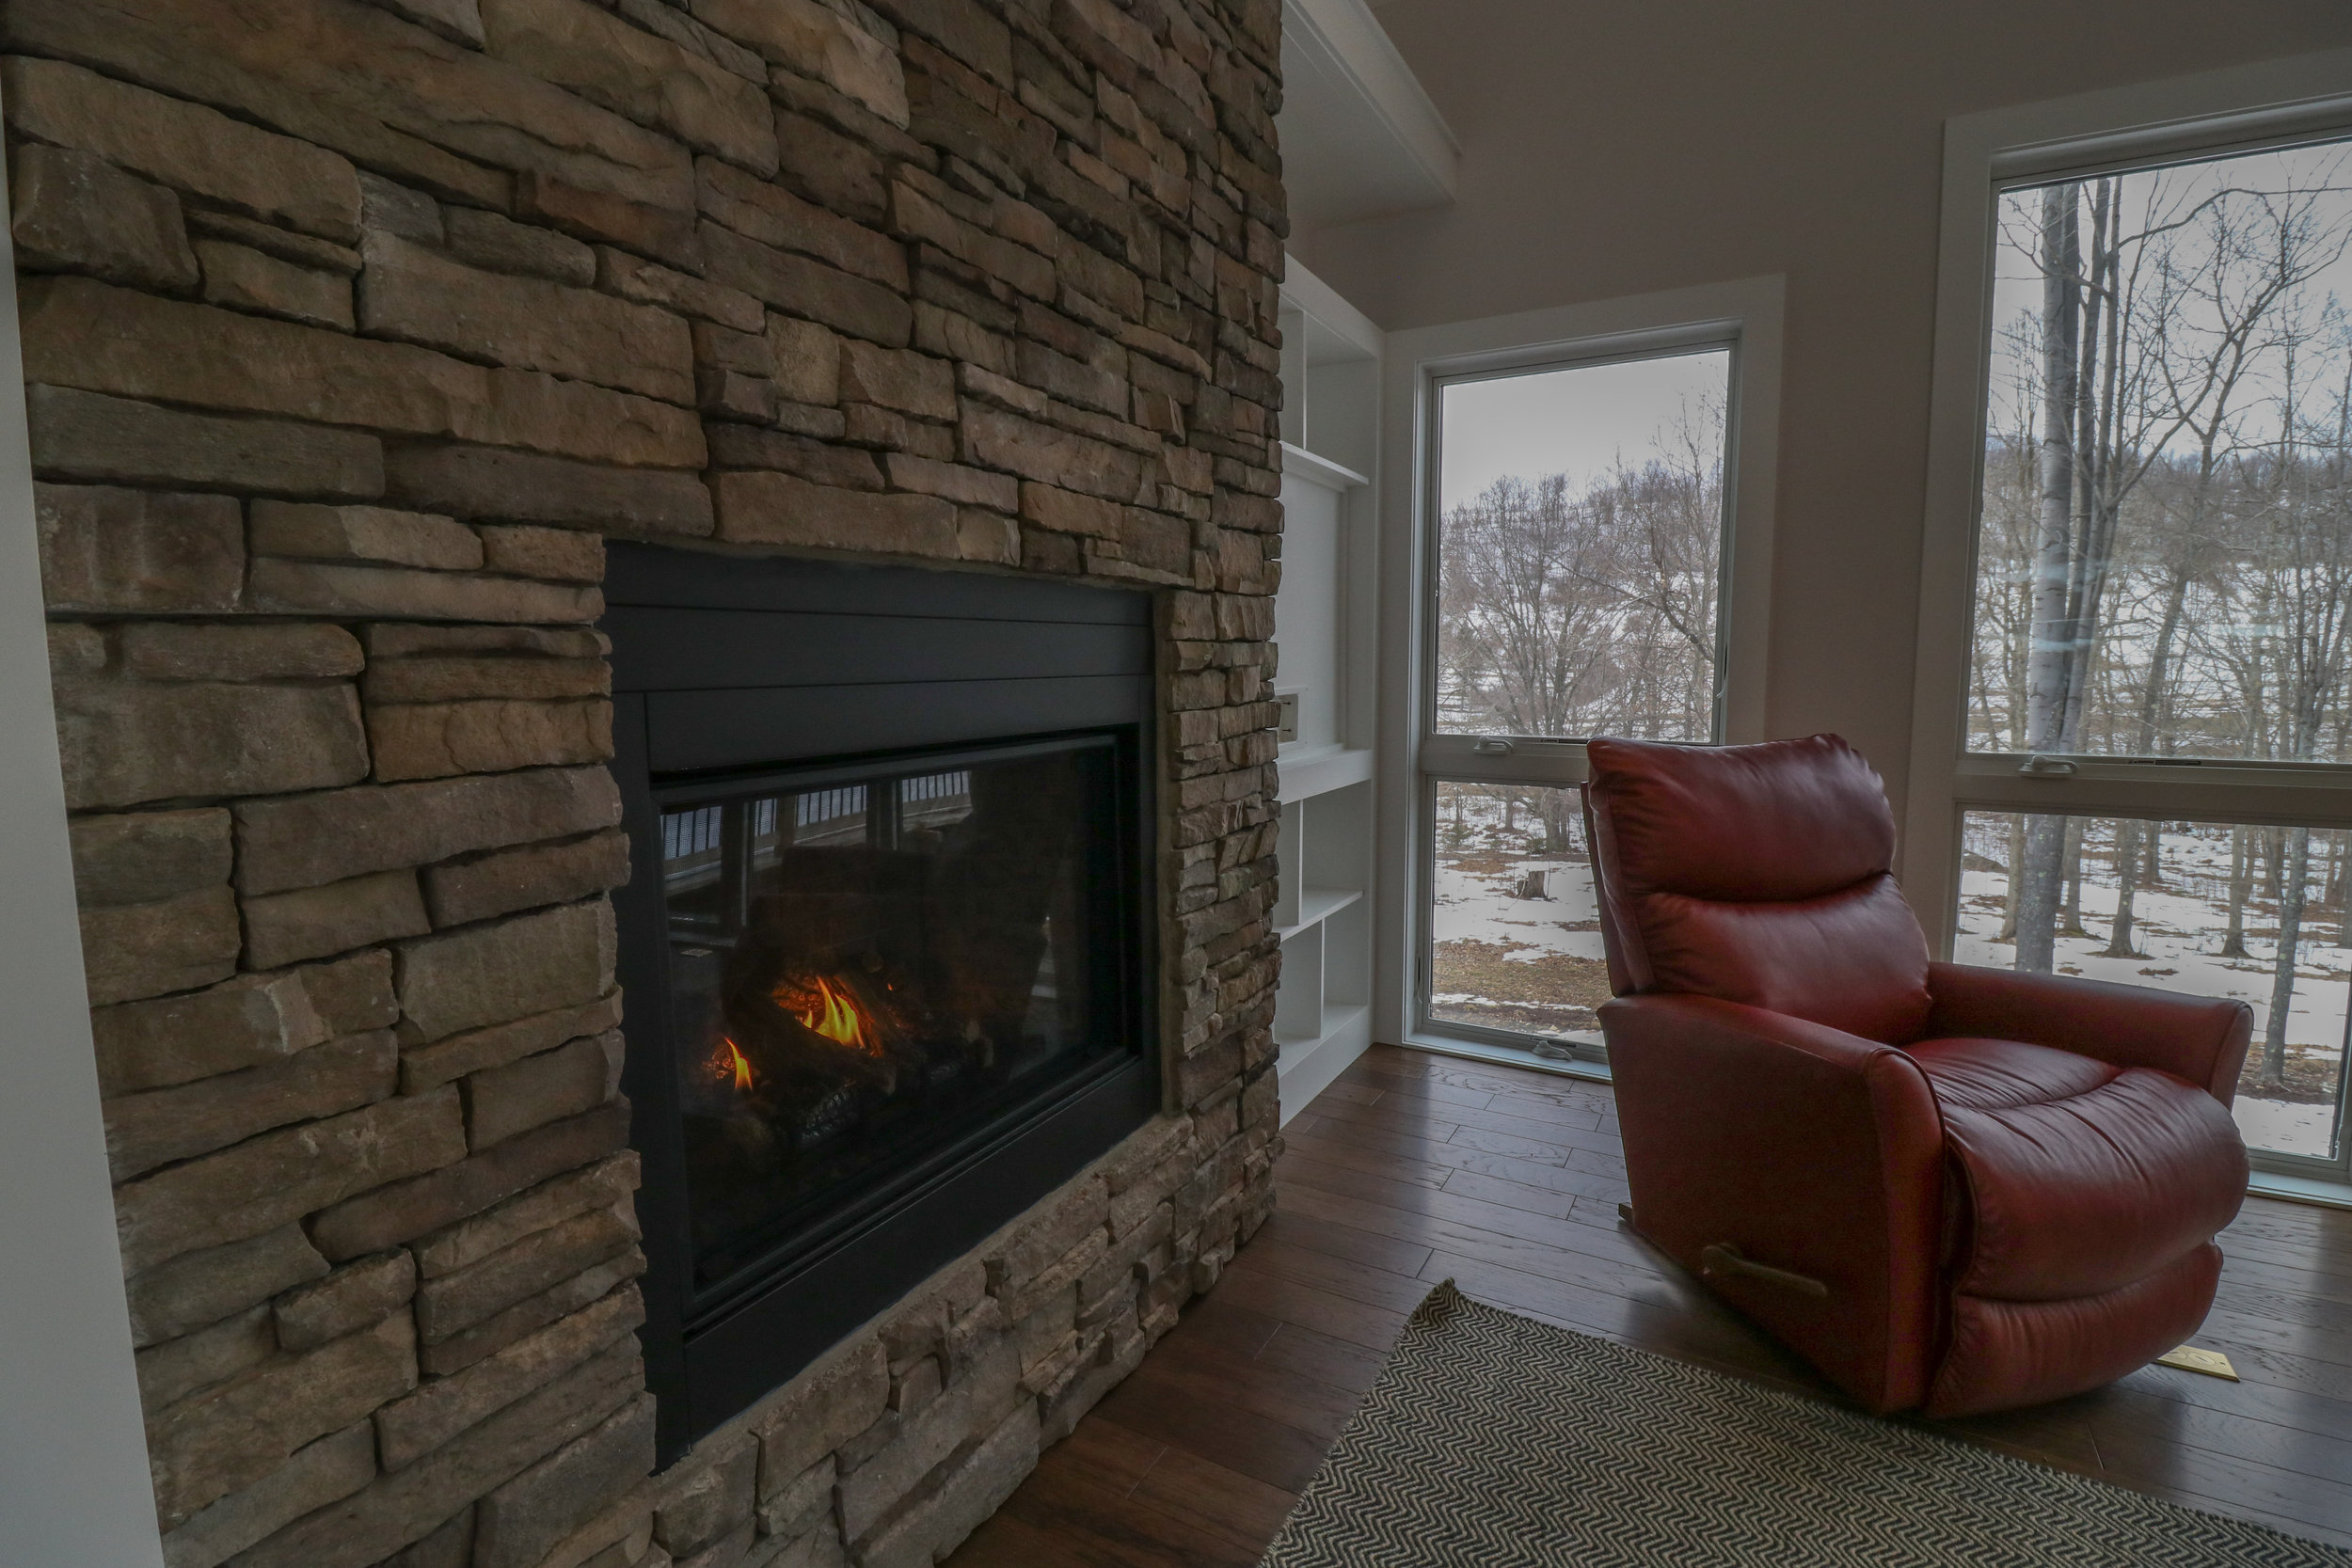 gosnell_builders_home_for_sale_ridgeview_valley21.jpg